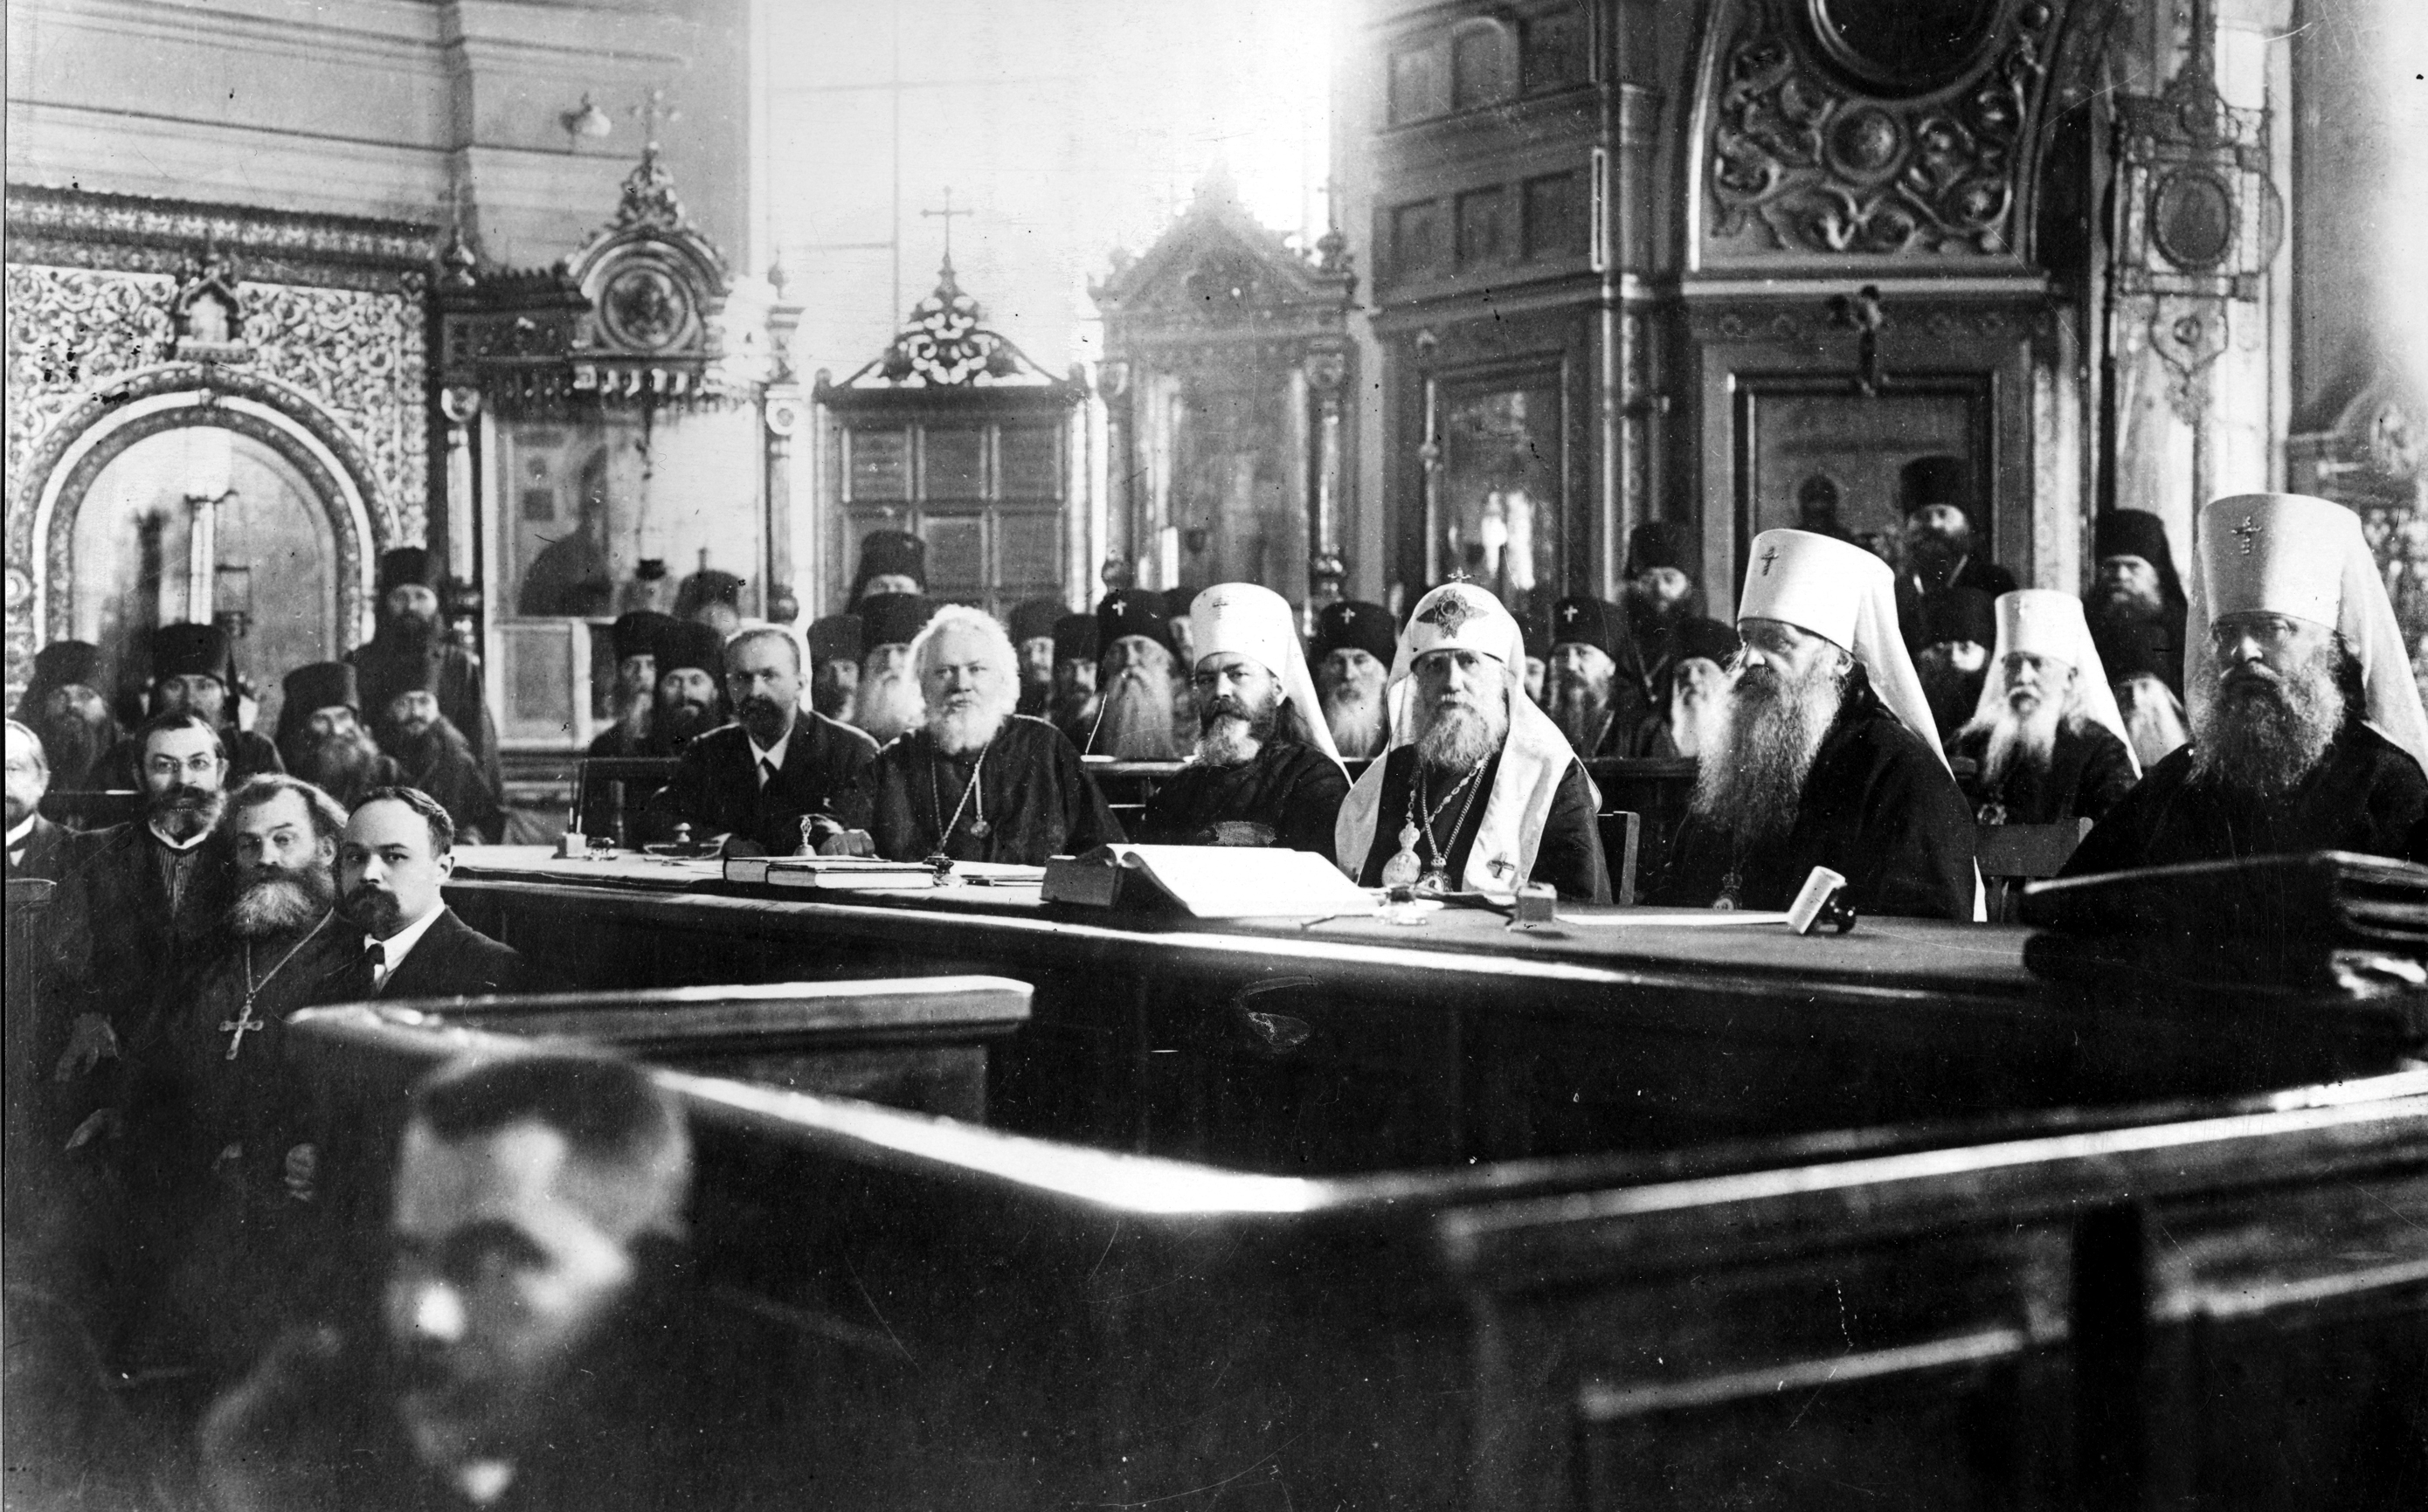 The Holy Synod (1917)